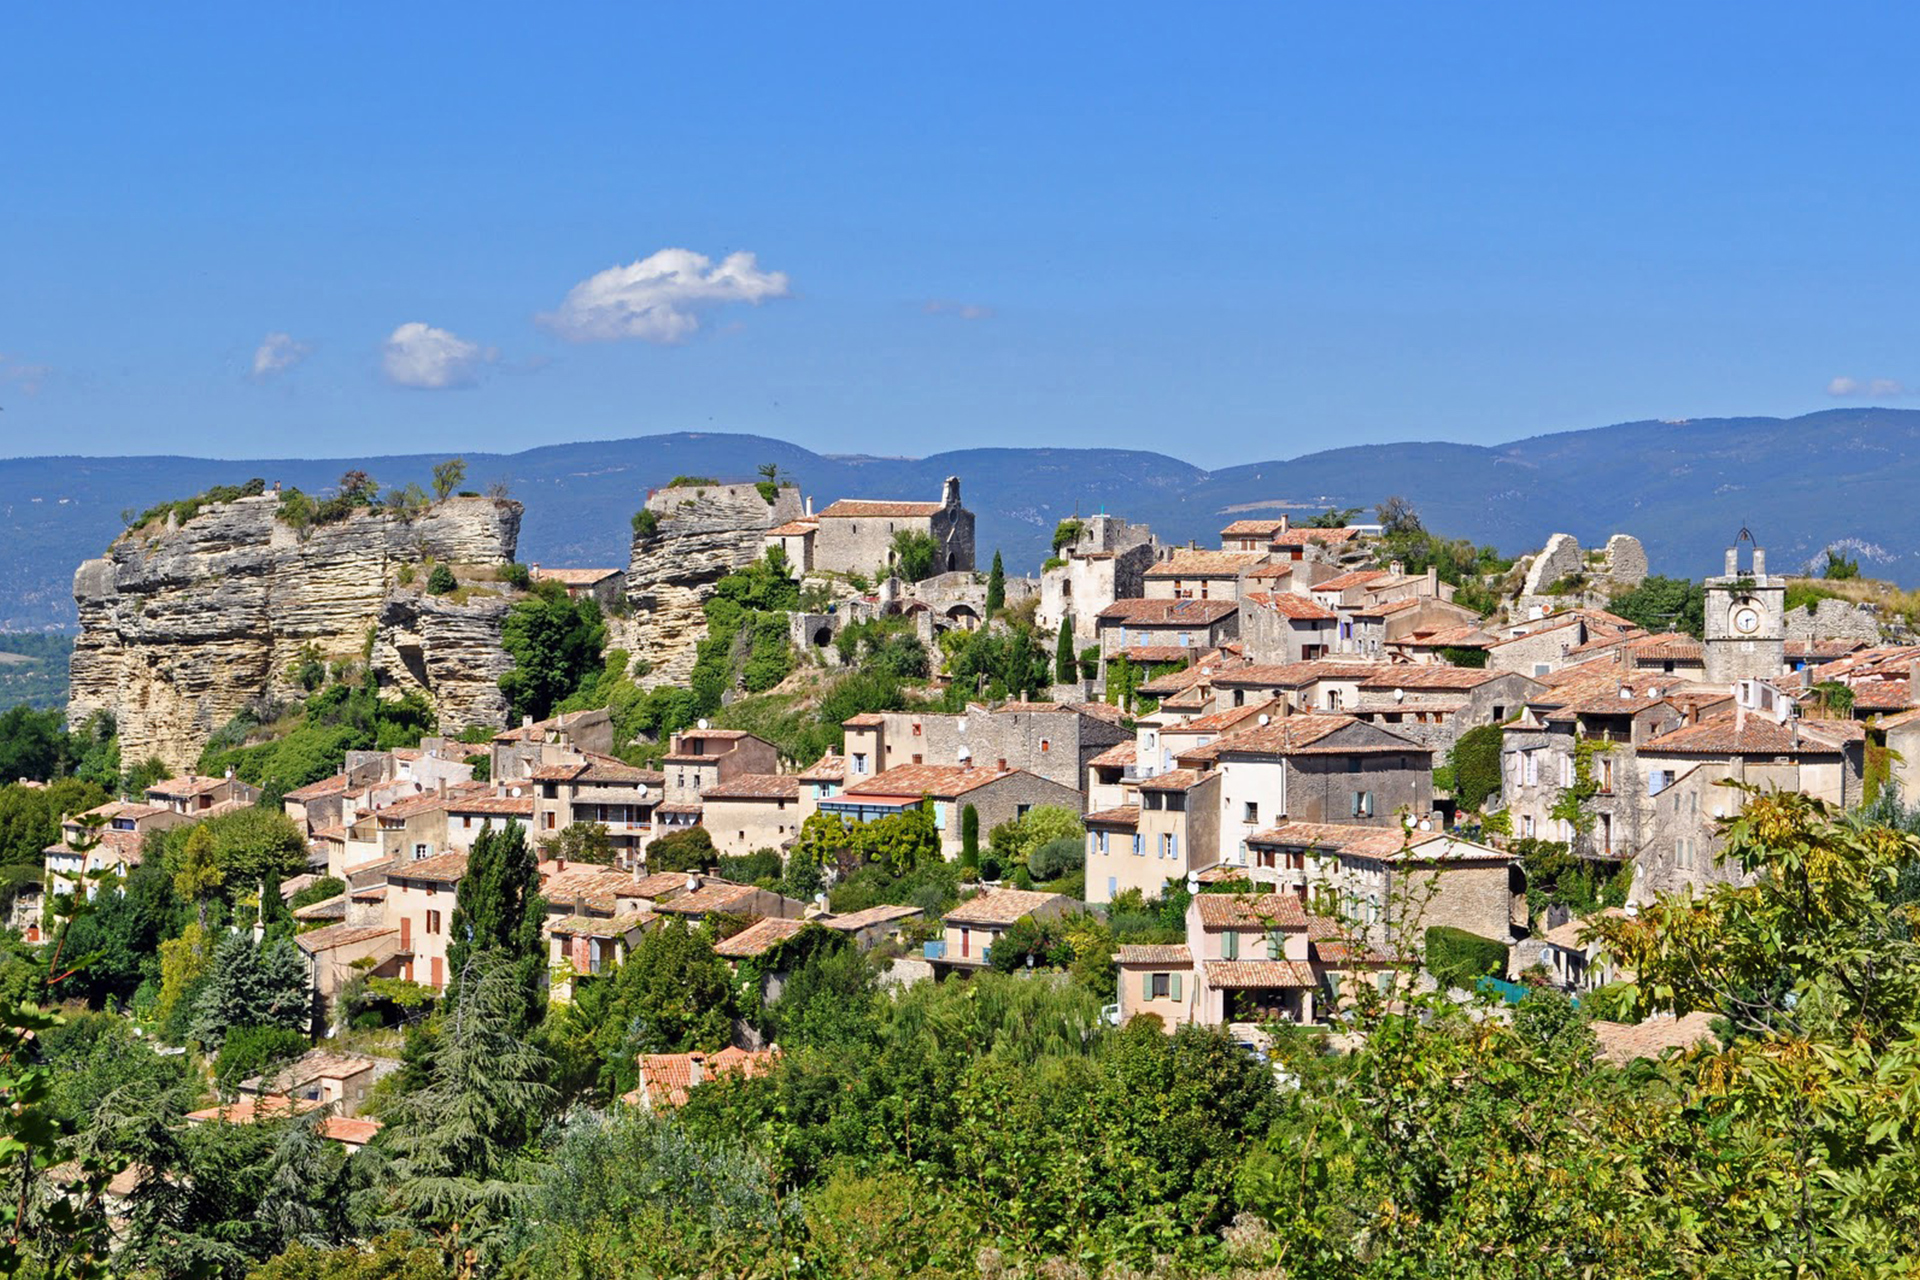 A typical village in southern France, with stone houses on wooded hillsides